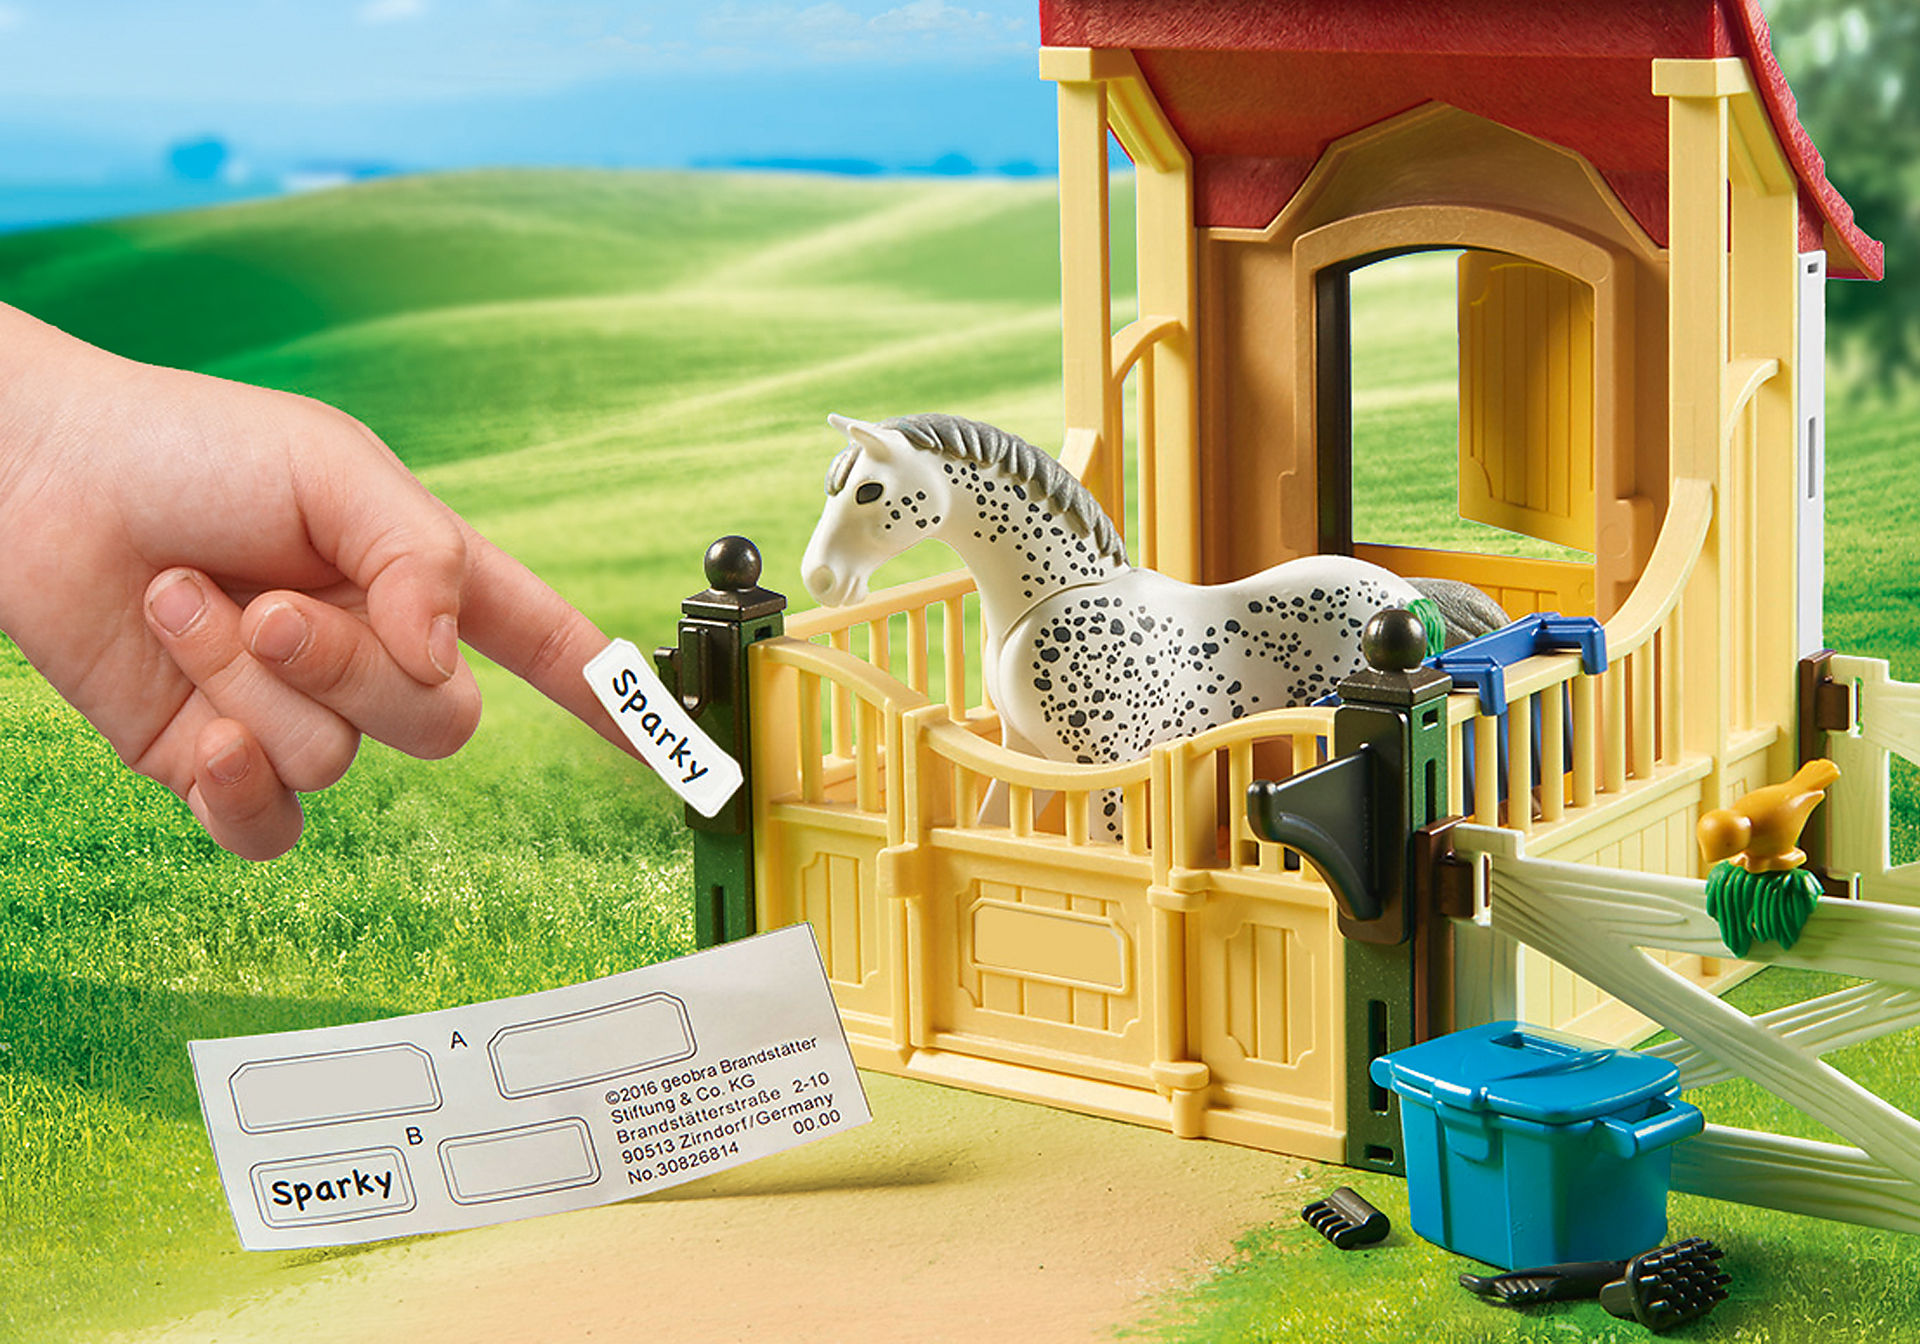 http://media.playmobil.com/i/playmobil/6935_product_extra1/Horse Stable with Appaloosa